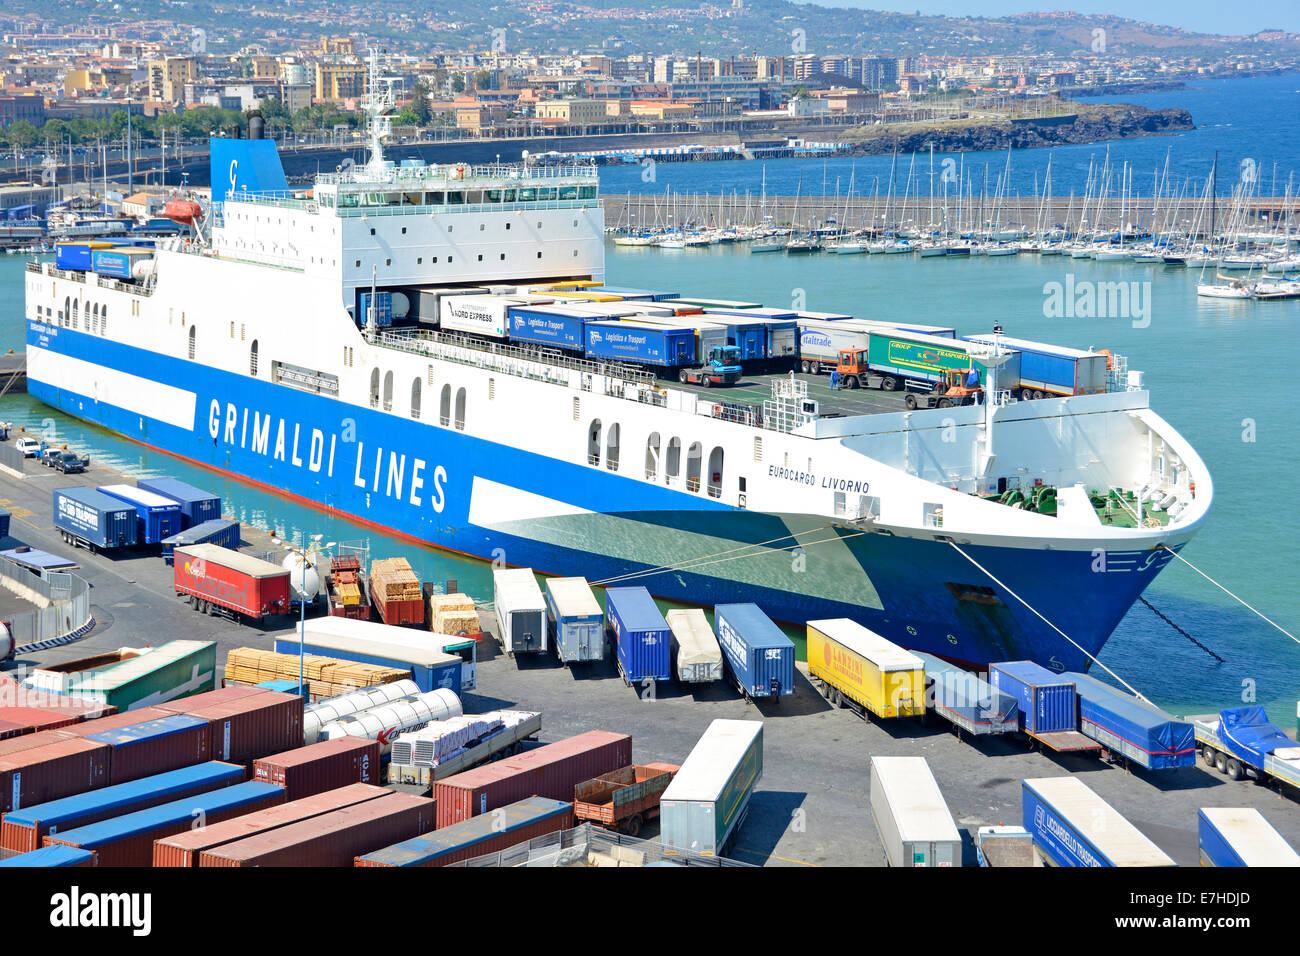 Close up of tug tractor units loading unloading lorry trailers on top open deck of Grimaldi Lines 'Eurocargo - Stock Image